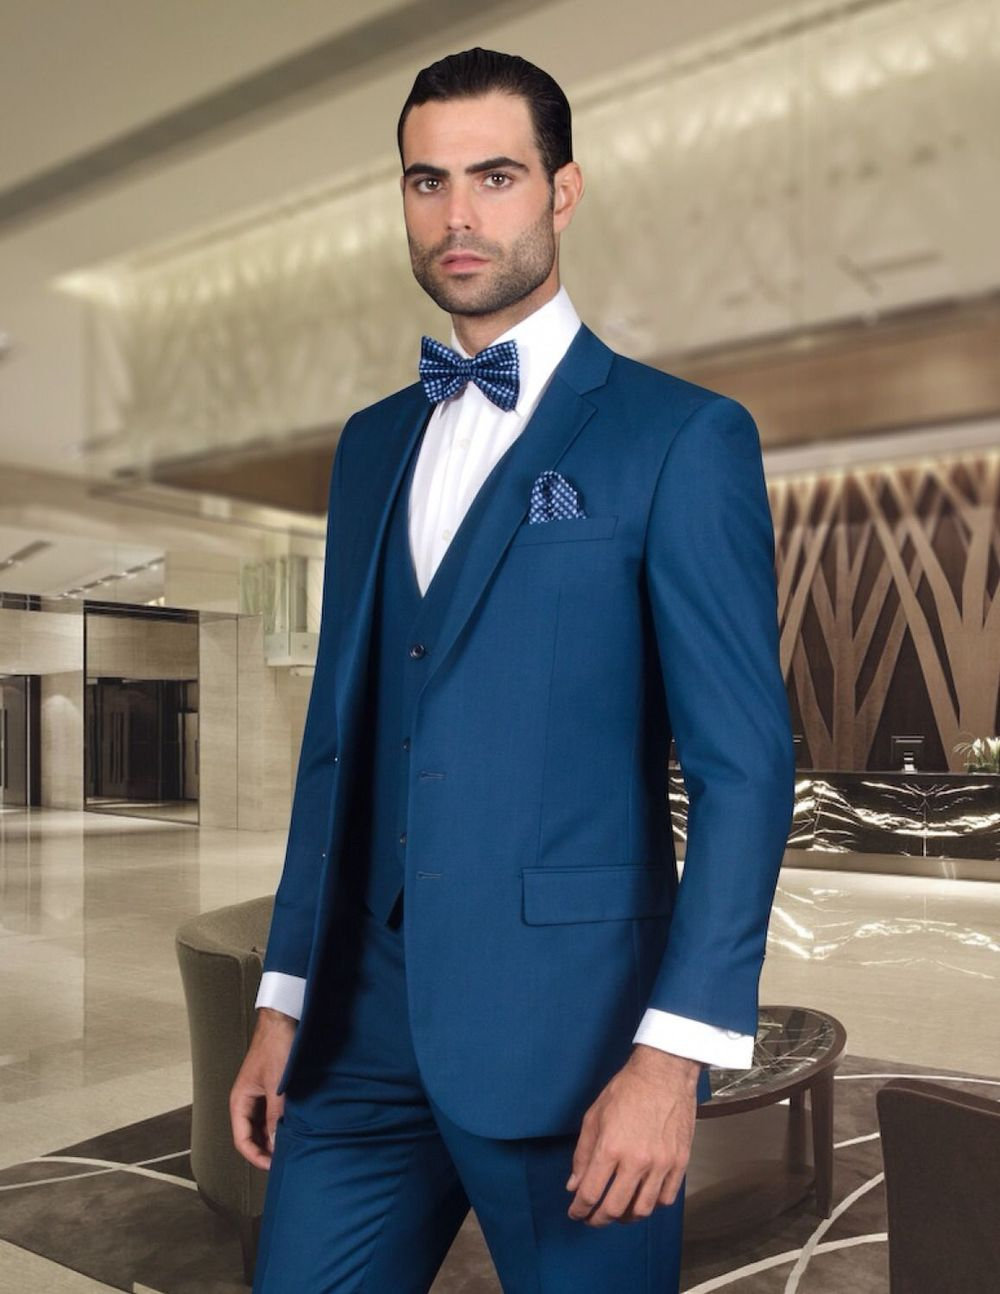 New Arrival Wool Blend Suits Trim Fit Navy Blue Men Wedding Suit Groom Tuxedo Best Formal Business Wears Jacket Pants Vest In From S